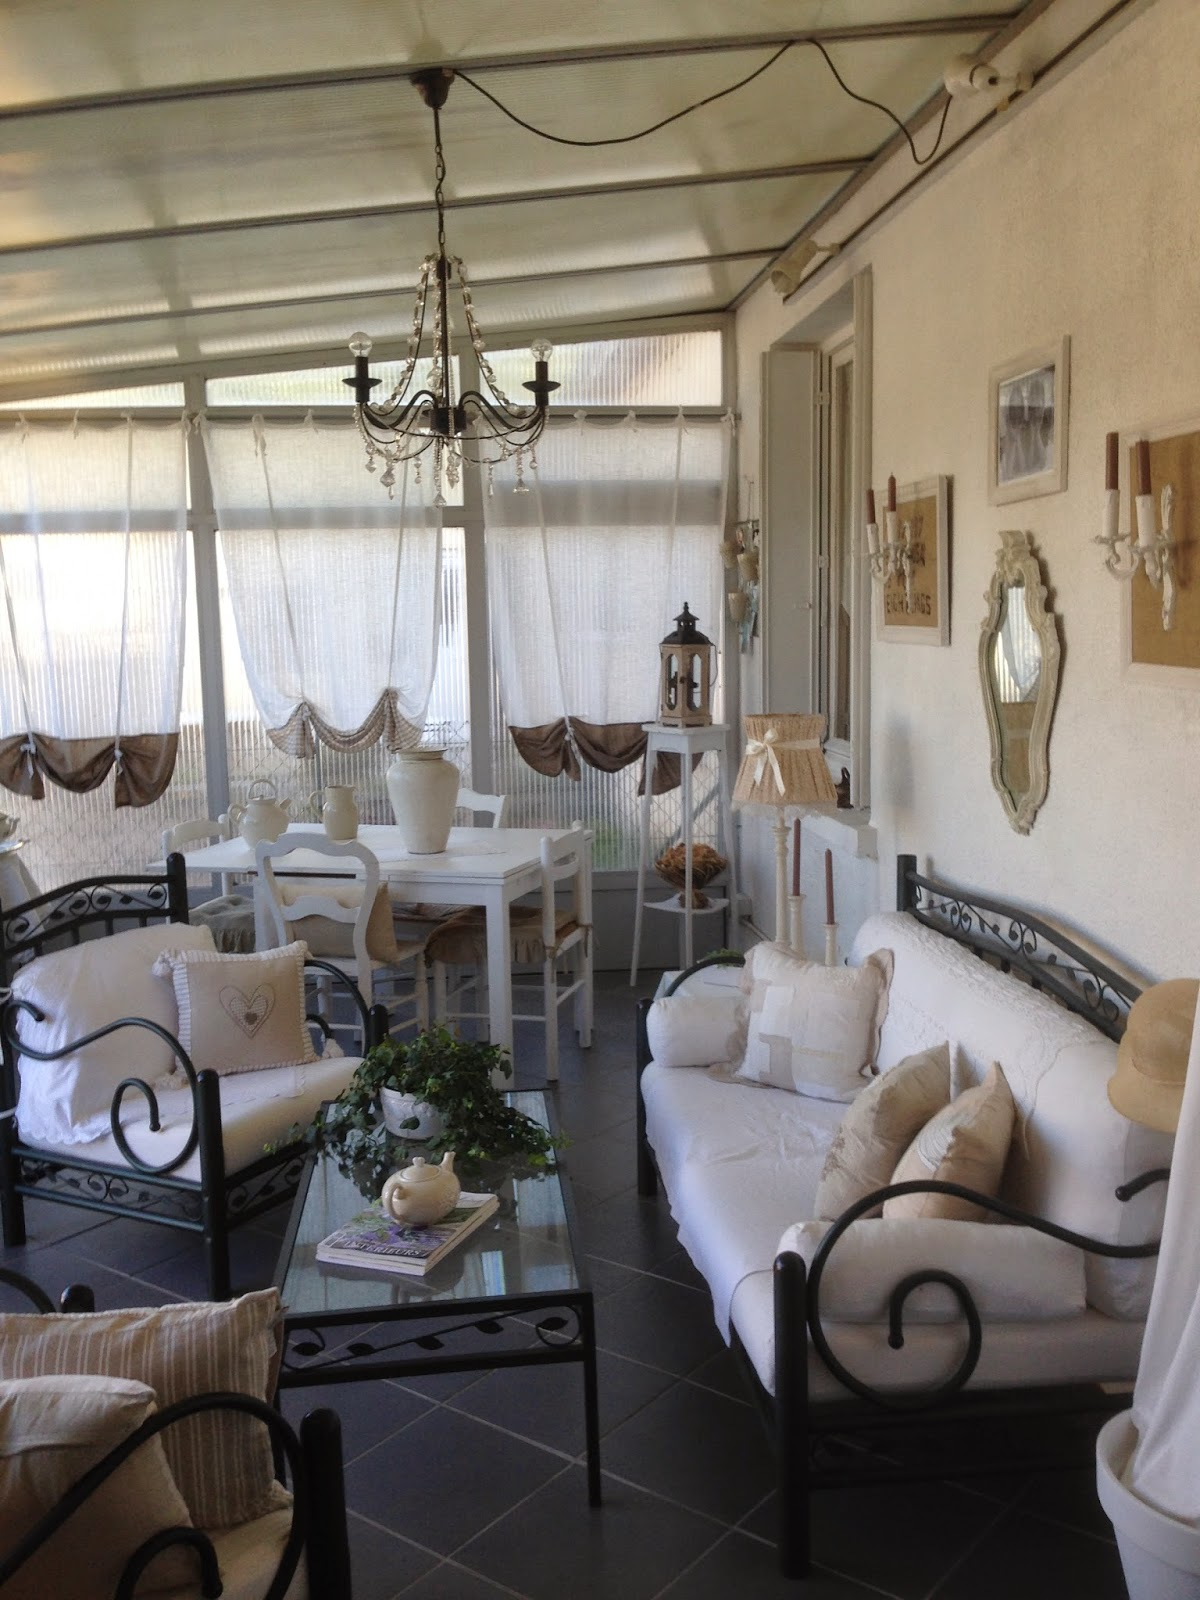 Shabby Eve: AMENAGEMENT VERANDA CREATION SHABBY CHIC